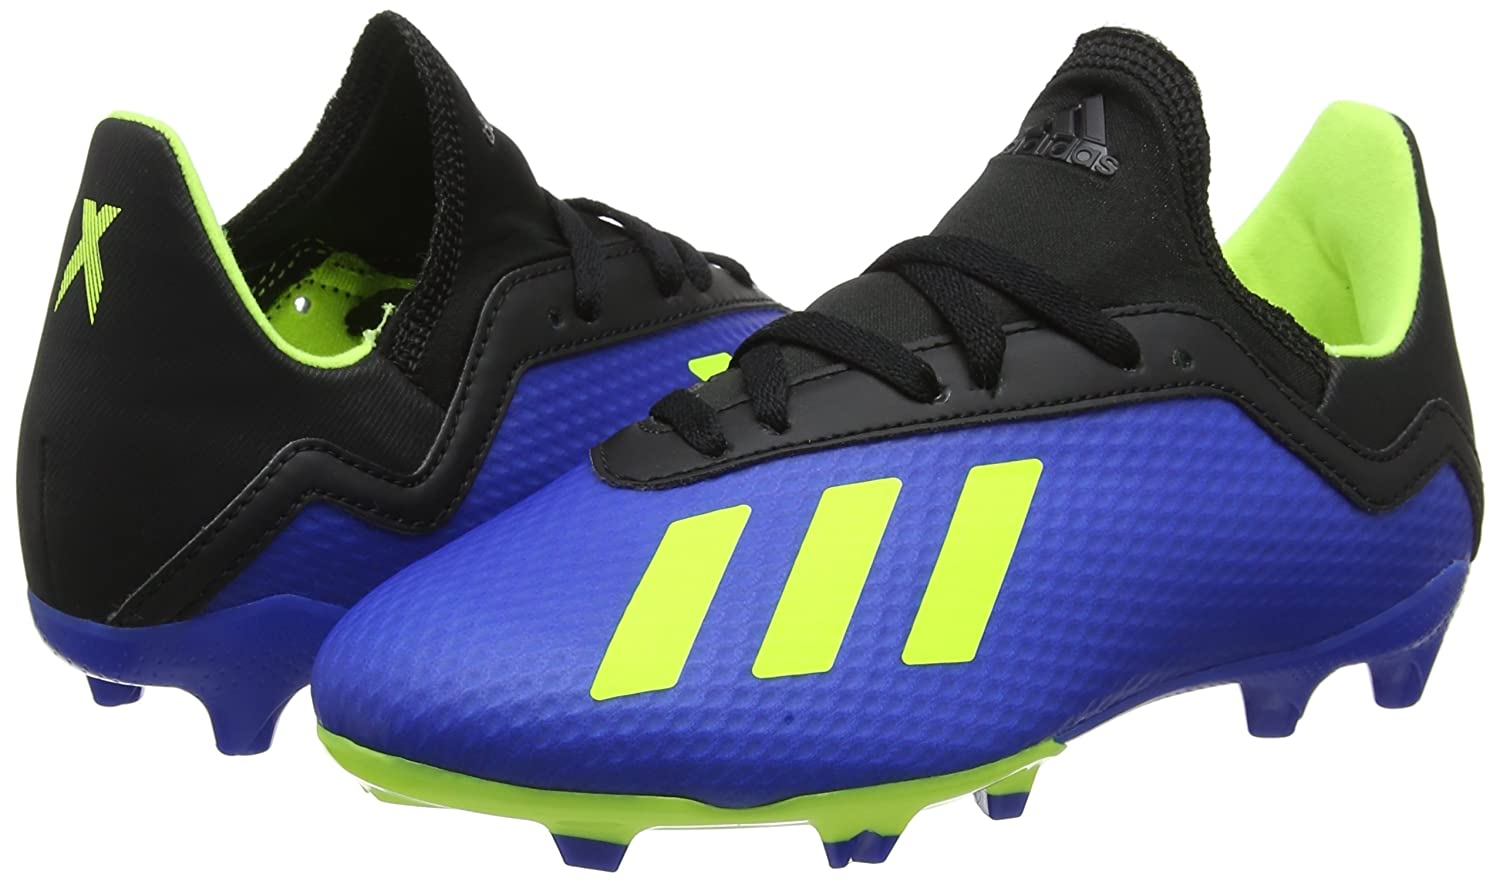 Amazon.com | adidas Kids Shoes Boys Soccer Cleats X 18.3 Firm FG Boots DB2416 (US 4.5) | Soccer